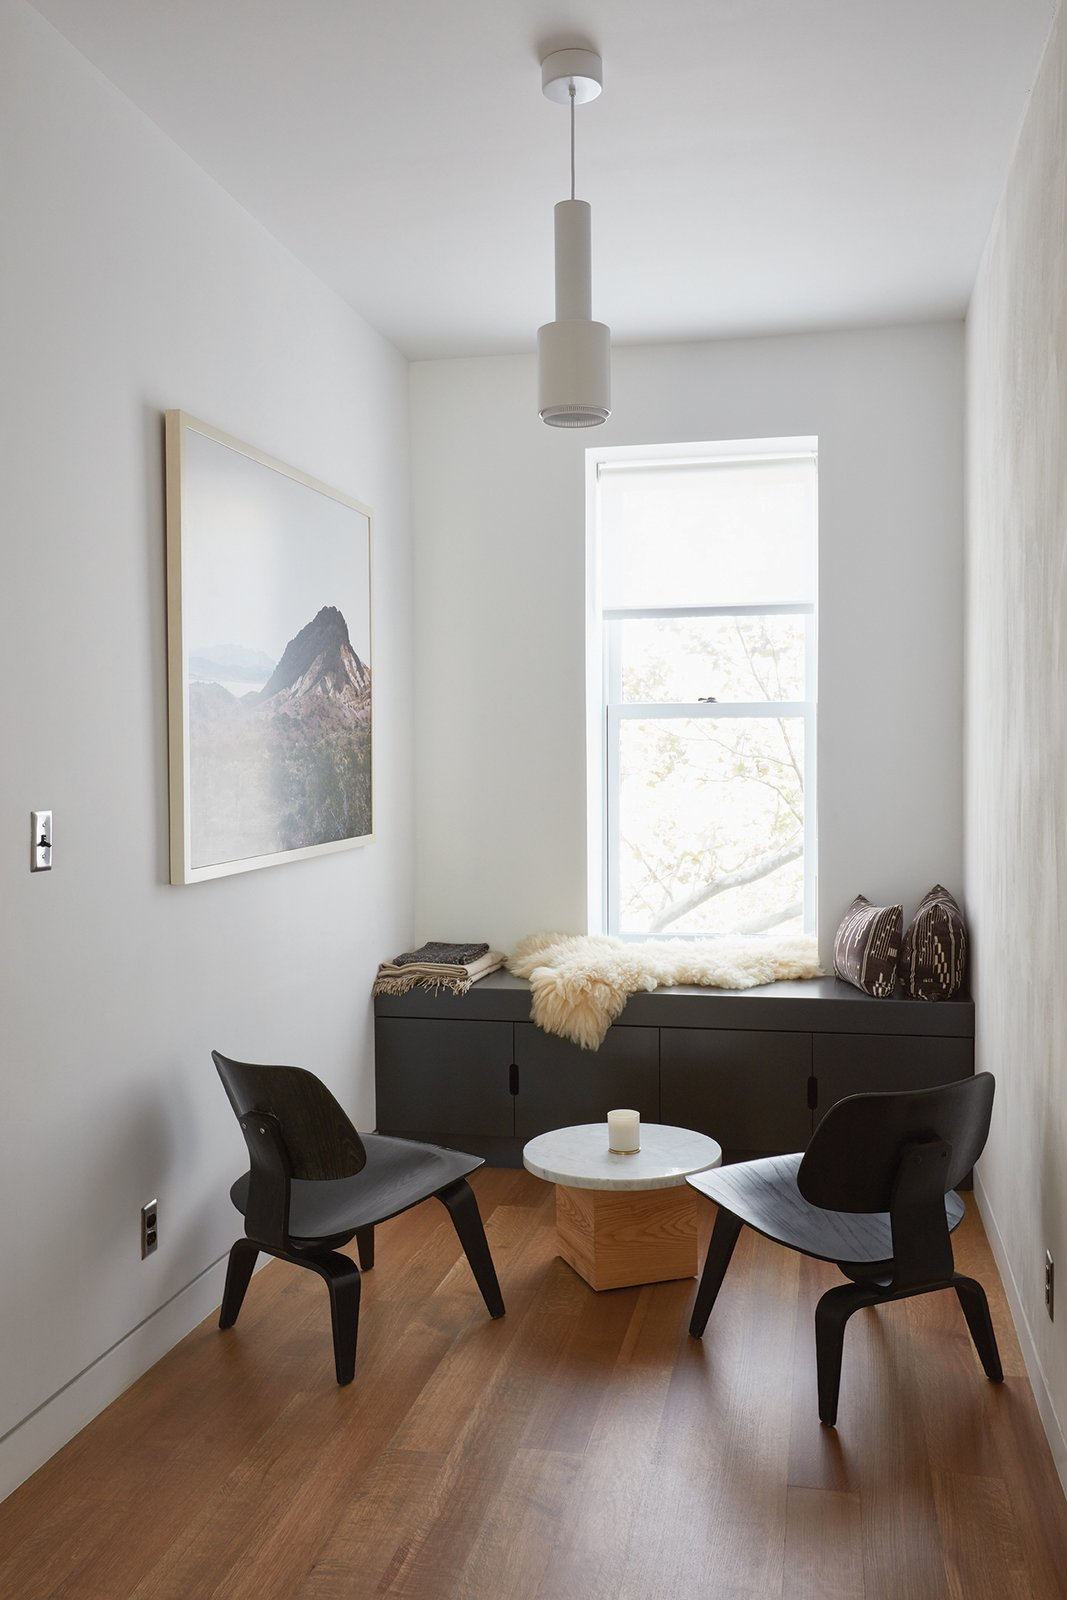 """In an eighteen-foot-wide brownstone, there's only so much you can do. But we wanted  it to feel fresh,"" Keith Burns, architect and resident Tagged: Living Room, Chair, Storage, Pendant Lighting, and Medium Hardwood Floor.  Photo 9 of 16 in Forever Changes"